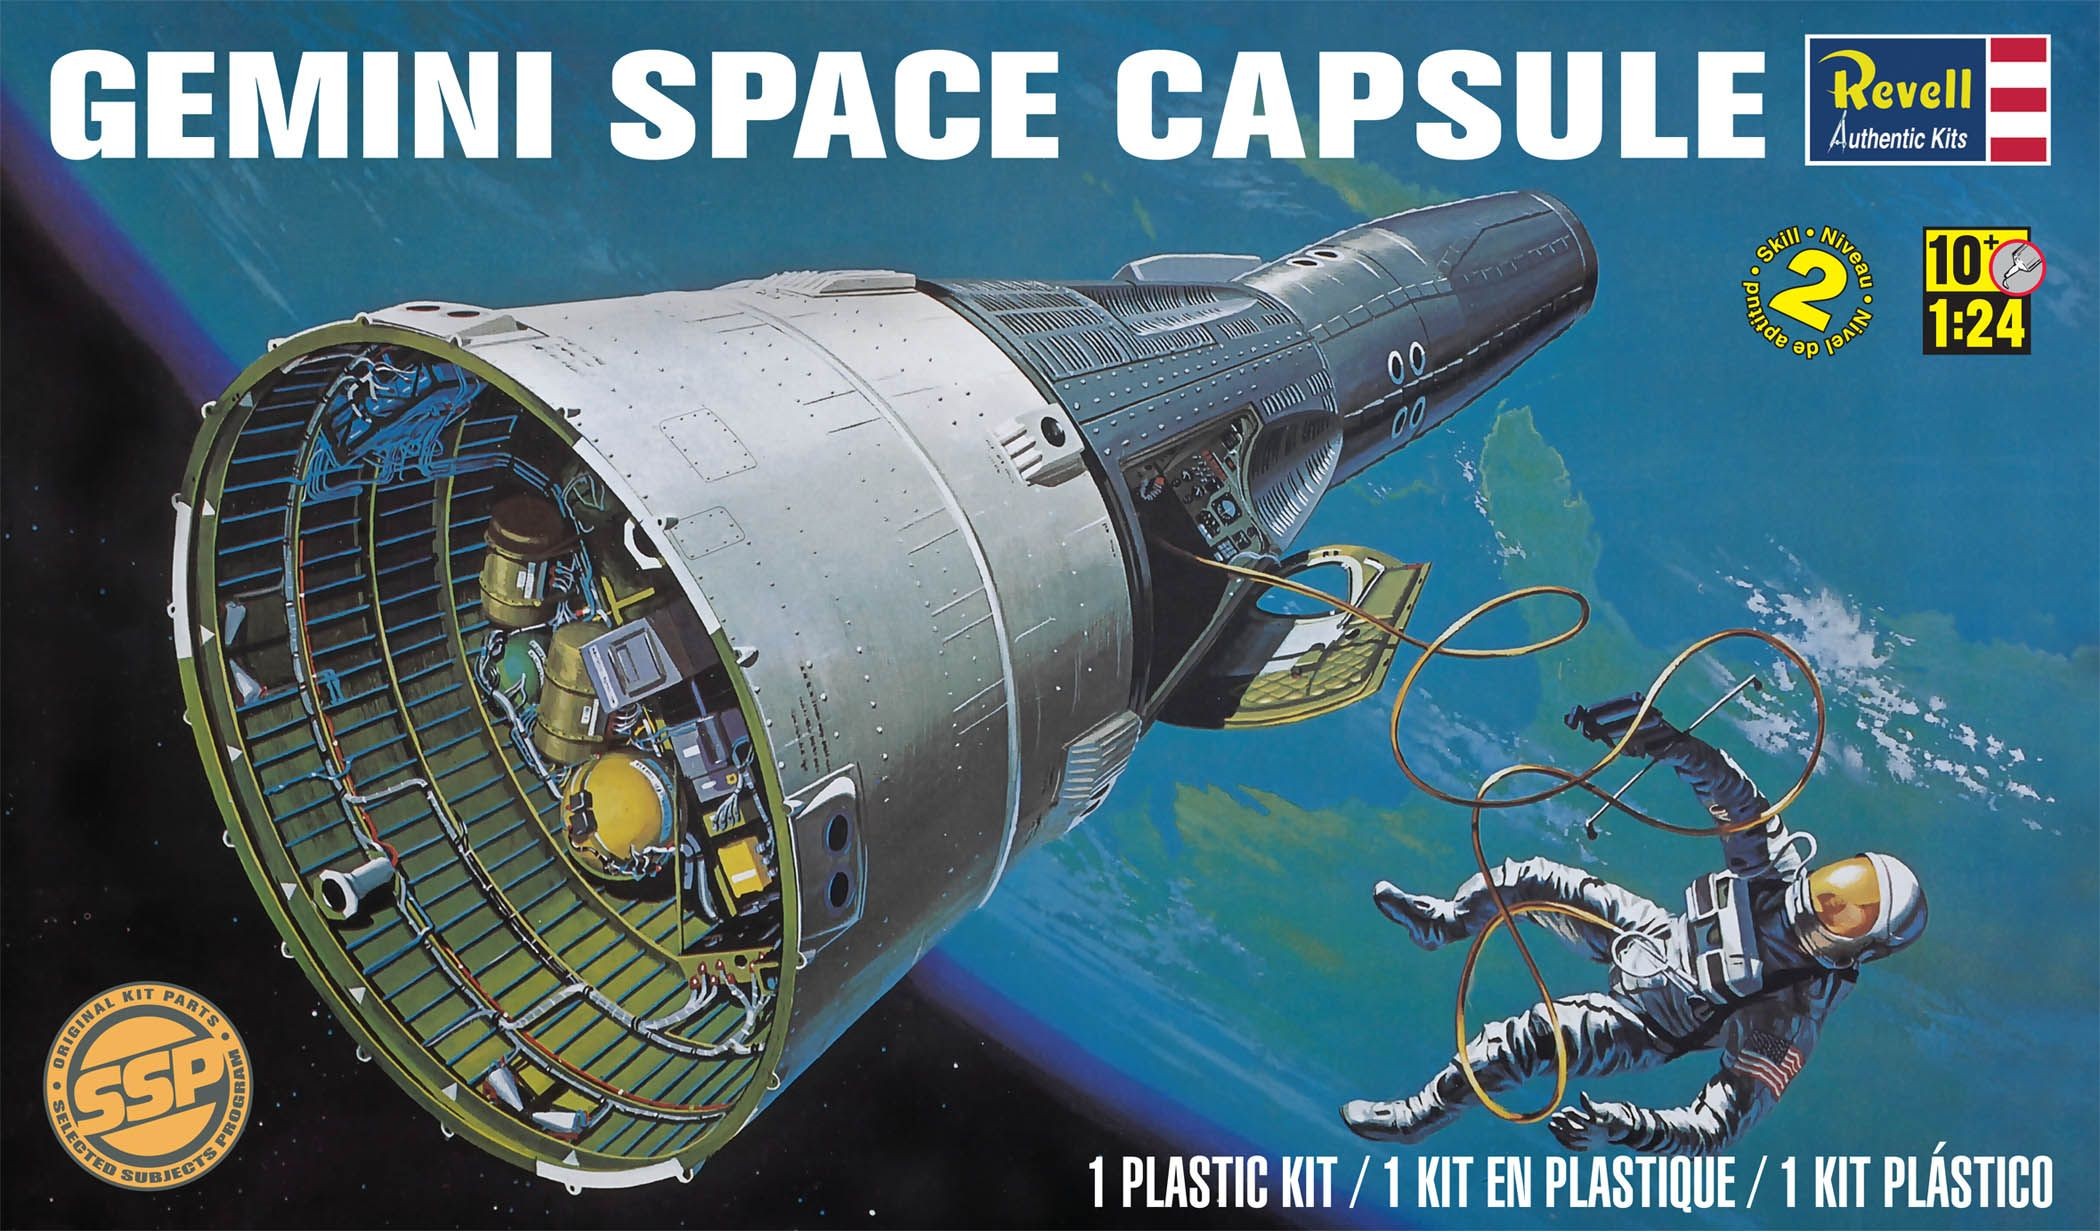 Gemini Space Capsule Plastic Model Kit FROM REVELL. Kit features two seated astronauts, opening ...